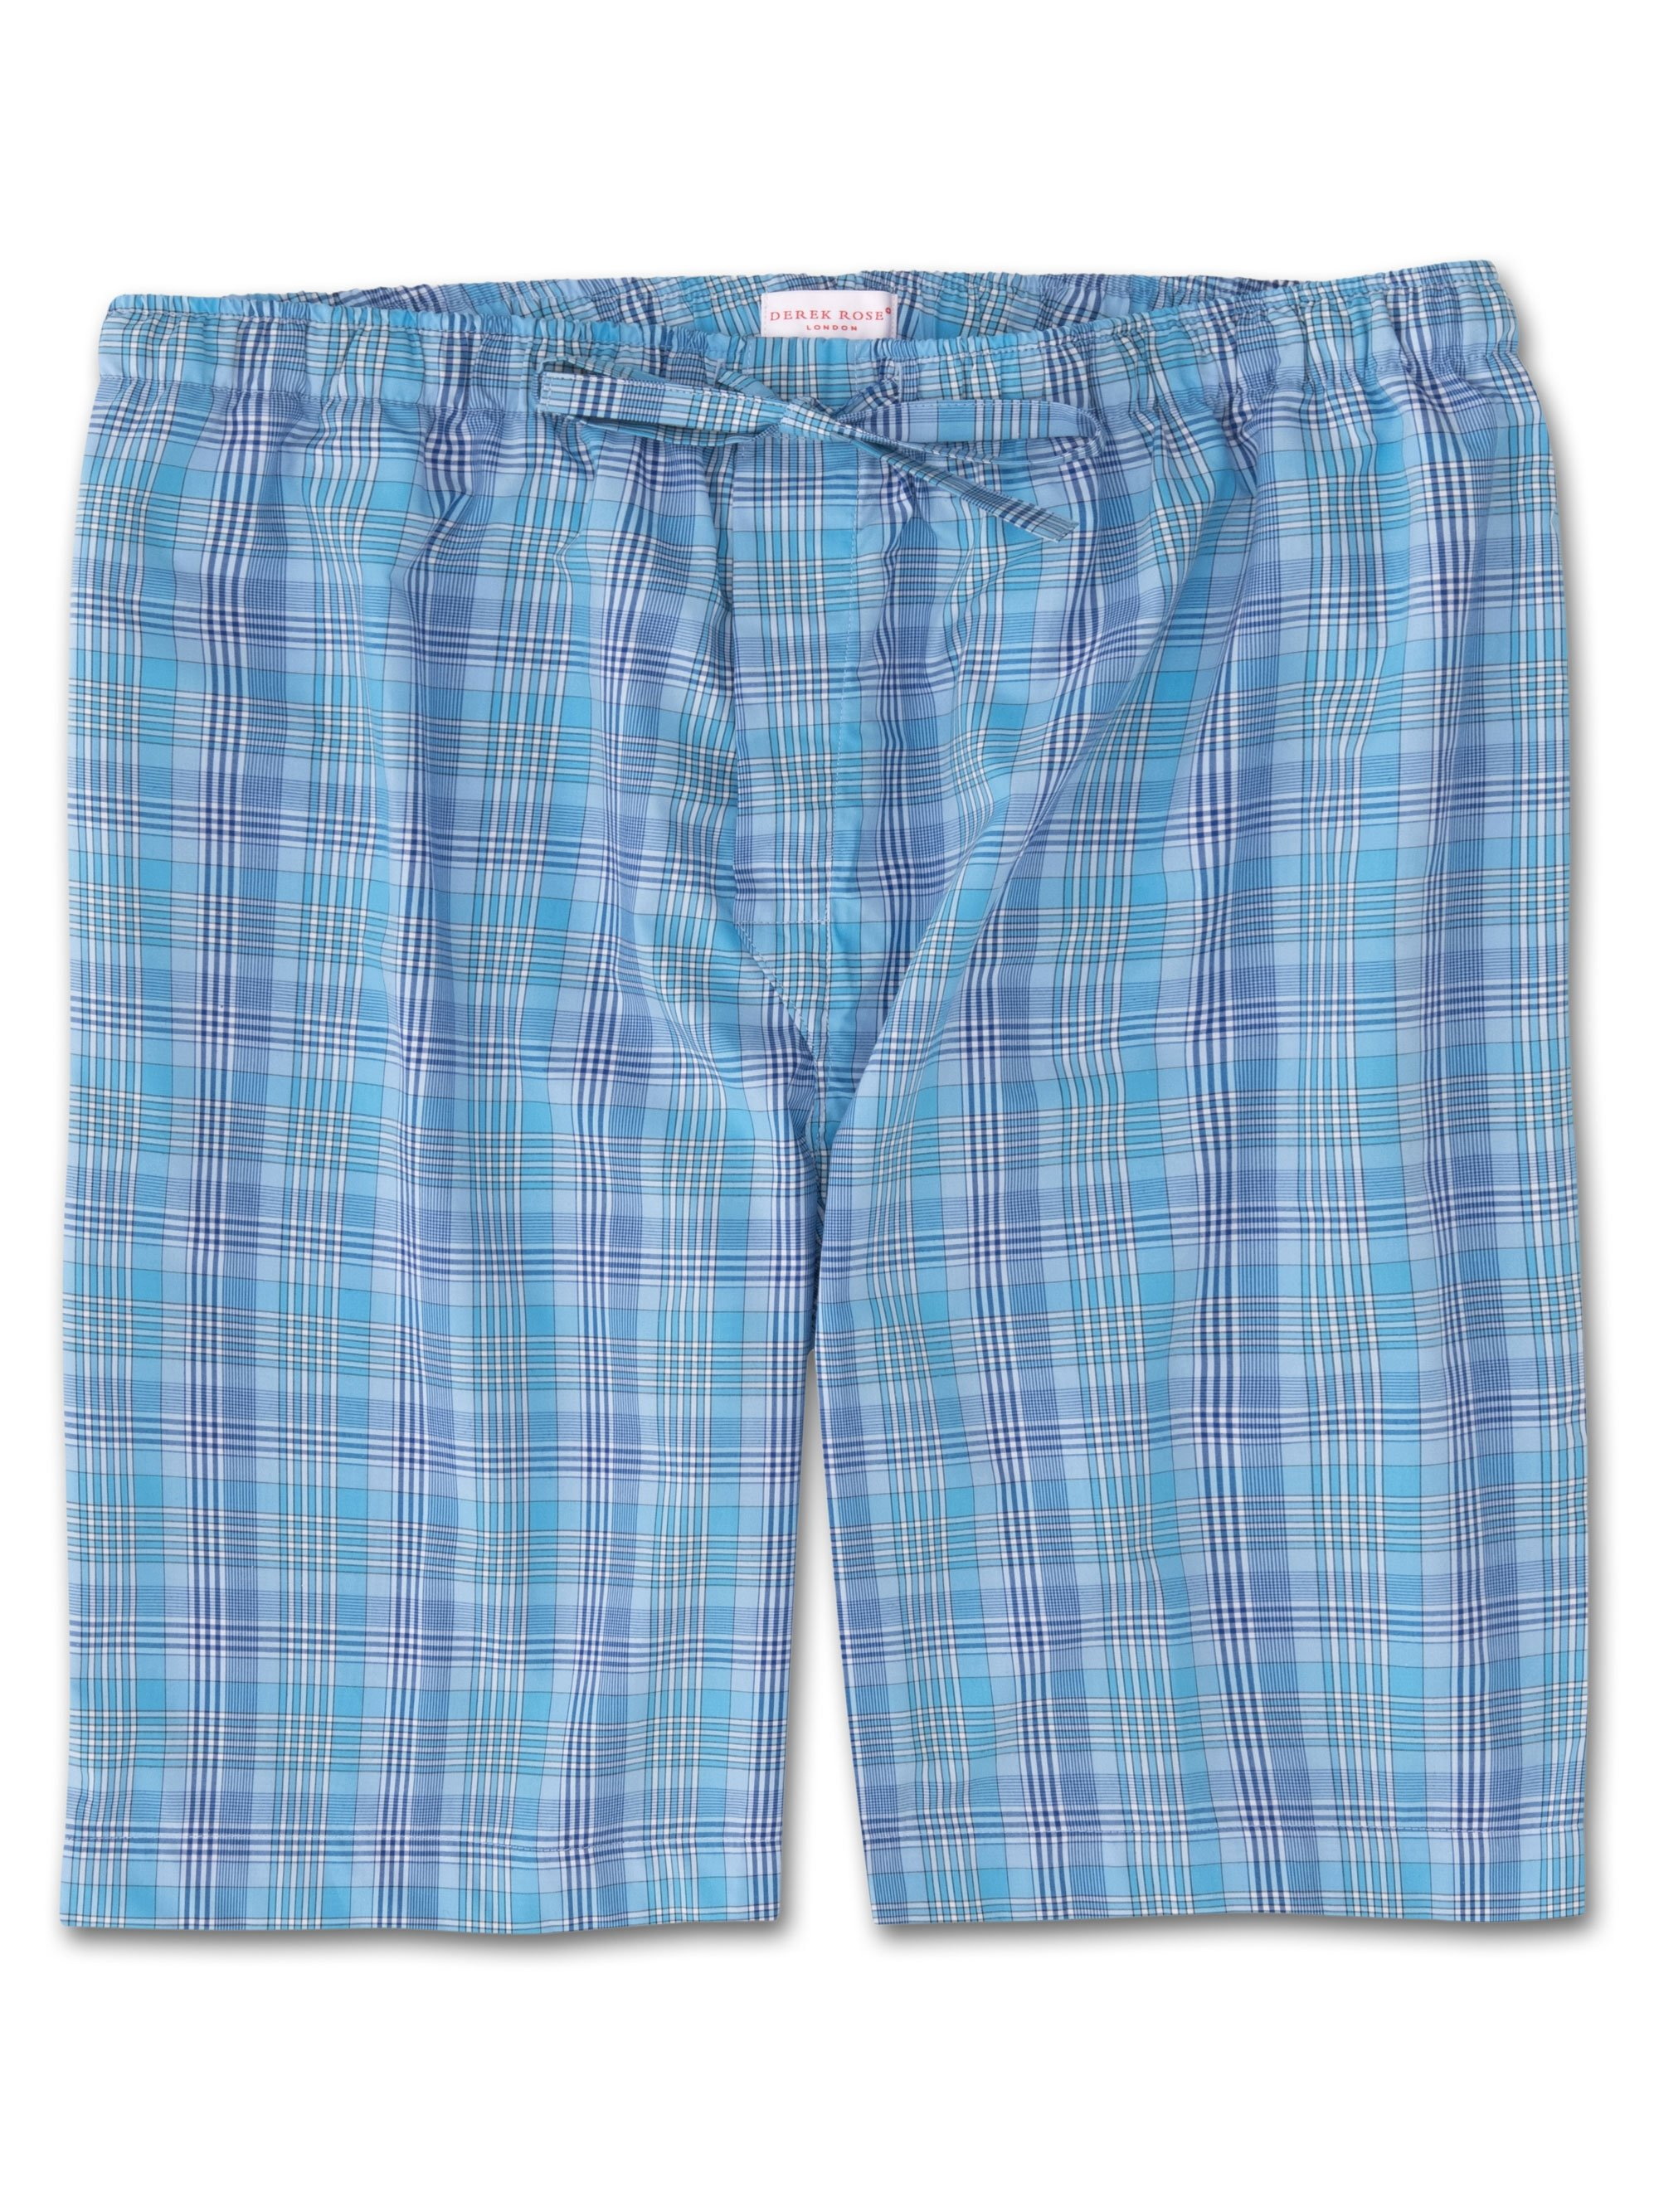 Men's Lounge Shorts Barker 20 Cotton Check Blue